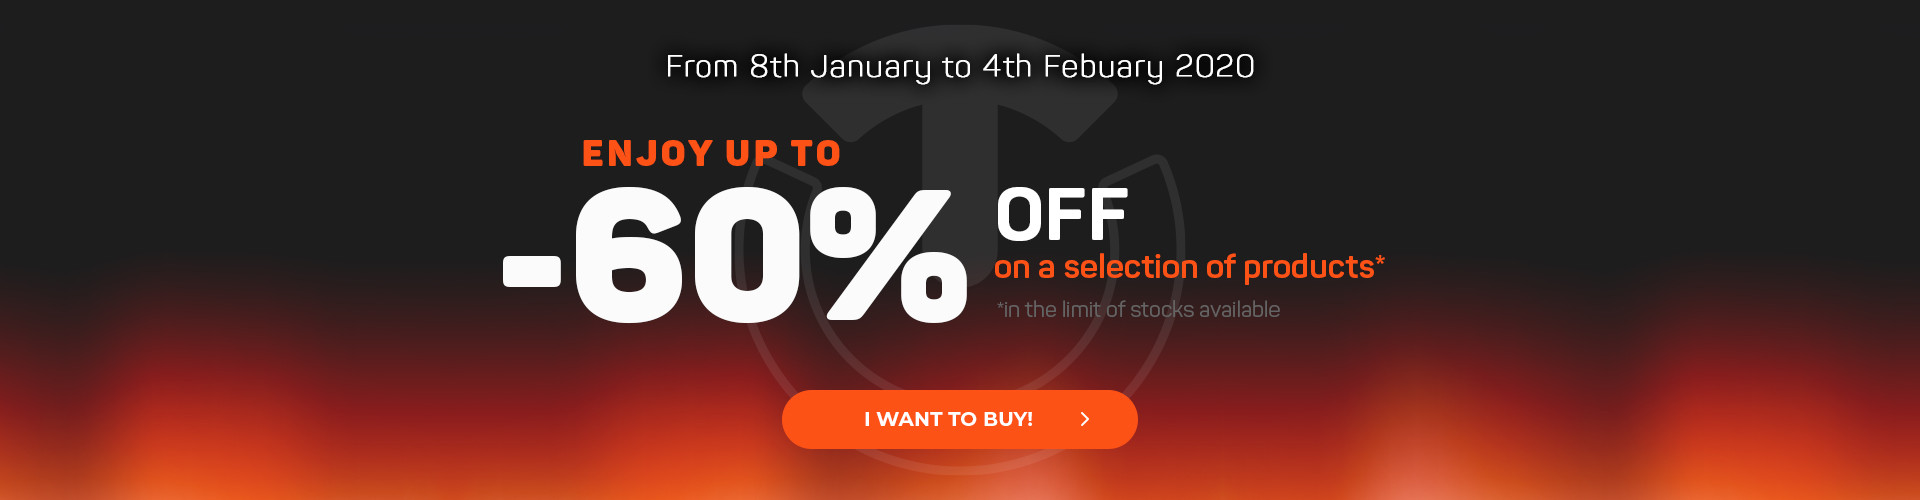 Winter Sales, enjoy up to 60% off!